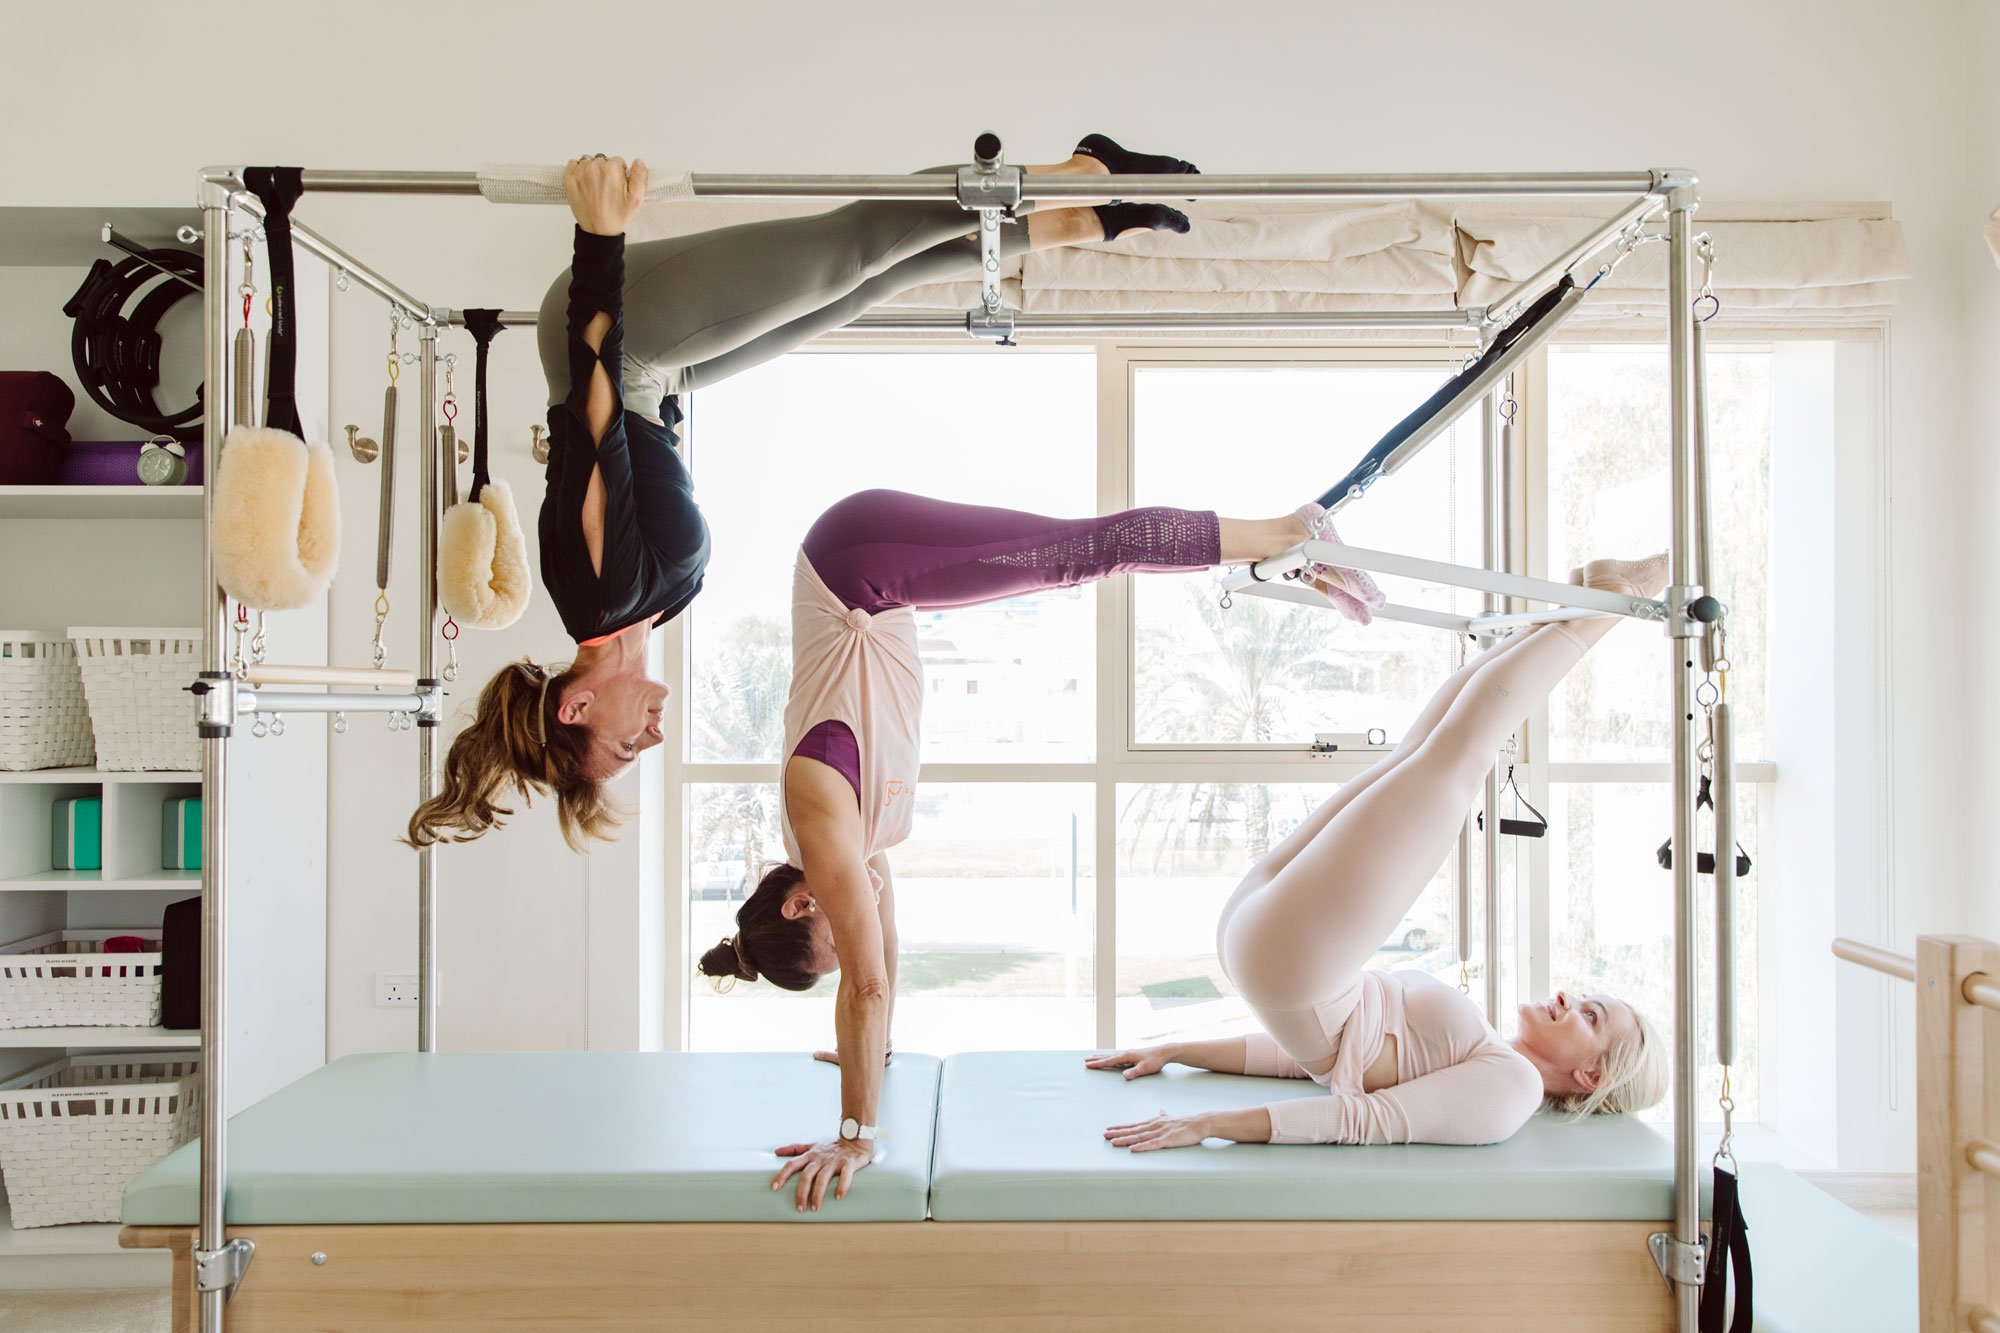 women doing pilates at pilates studio in Abu-Dhabi, UAE